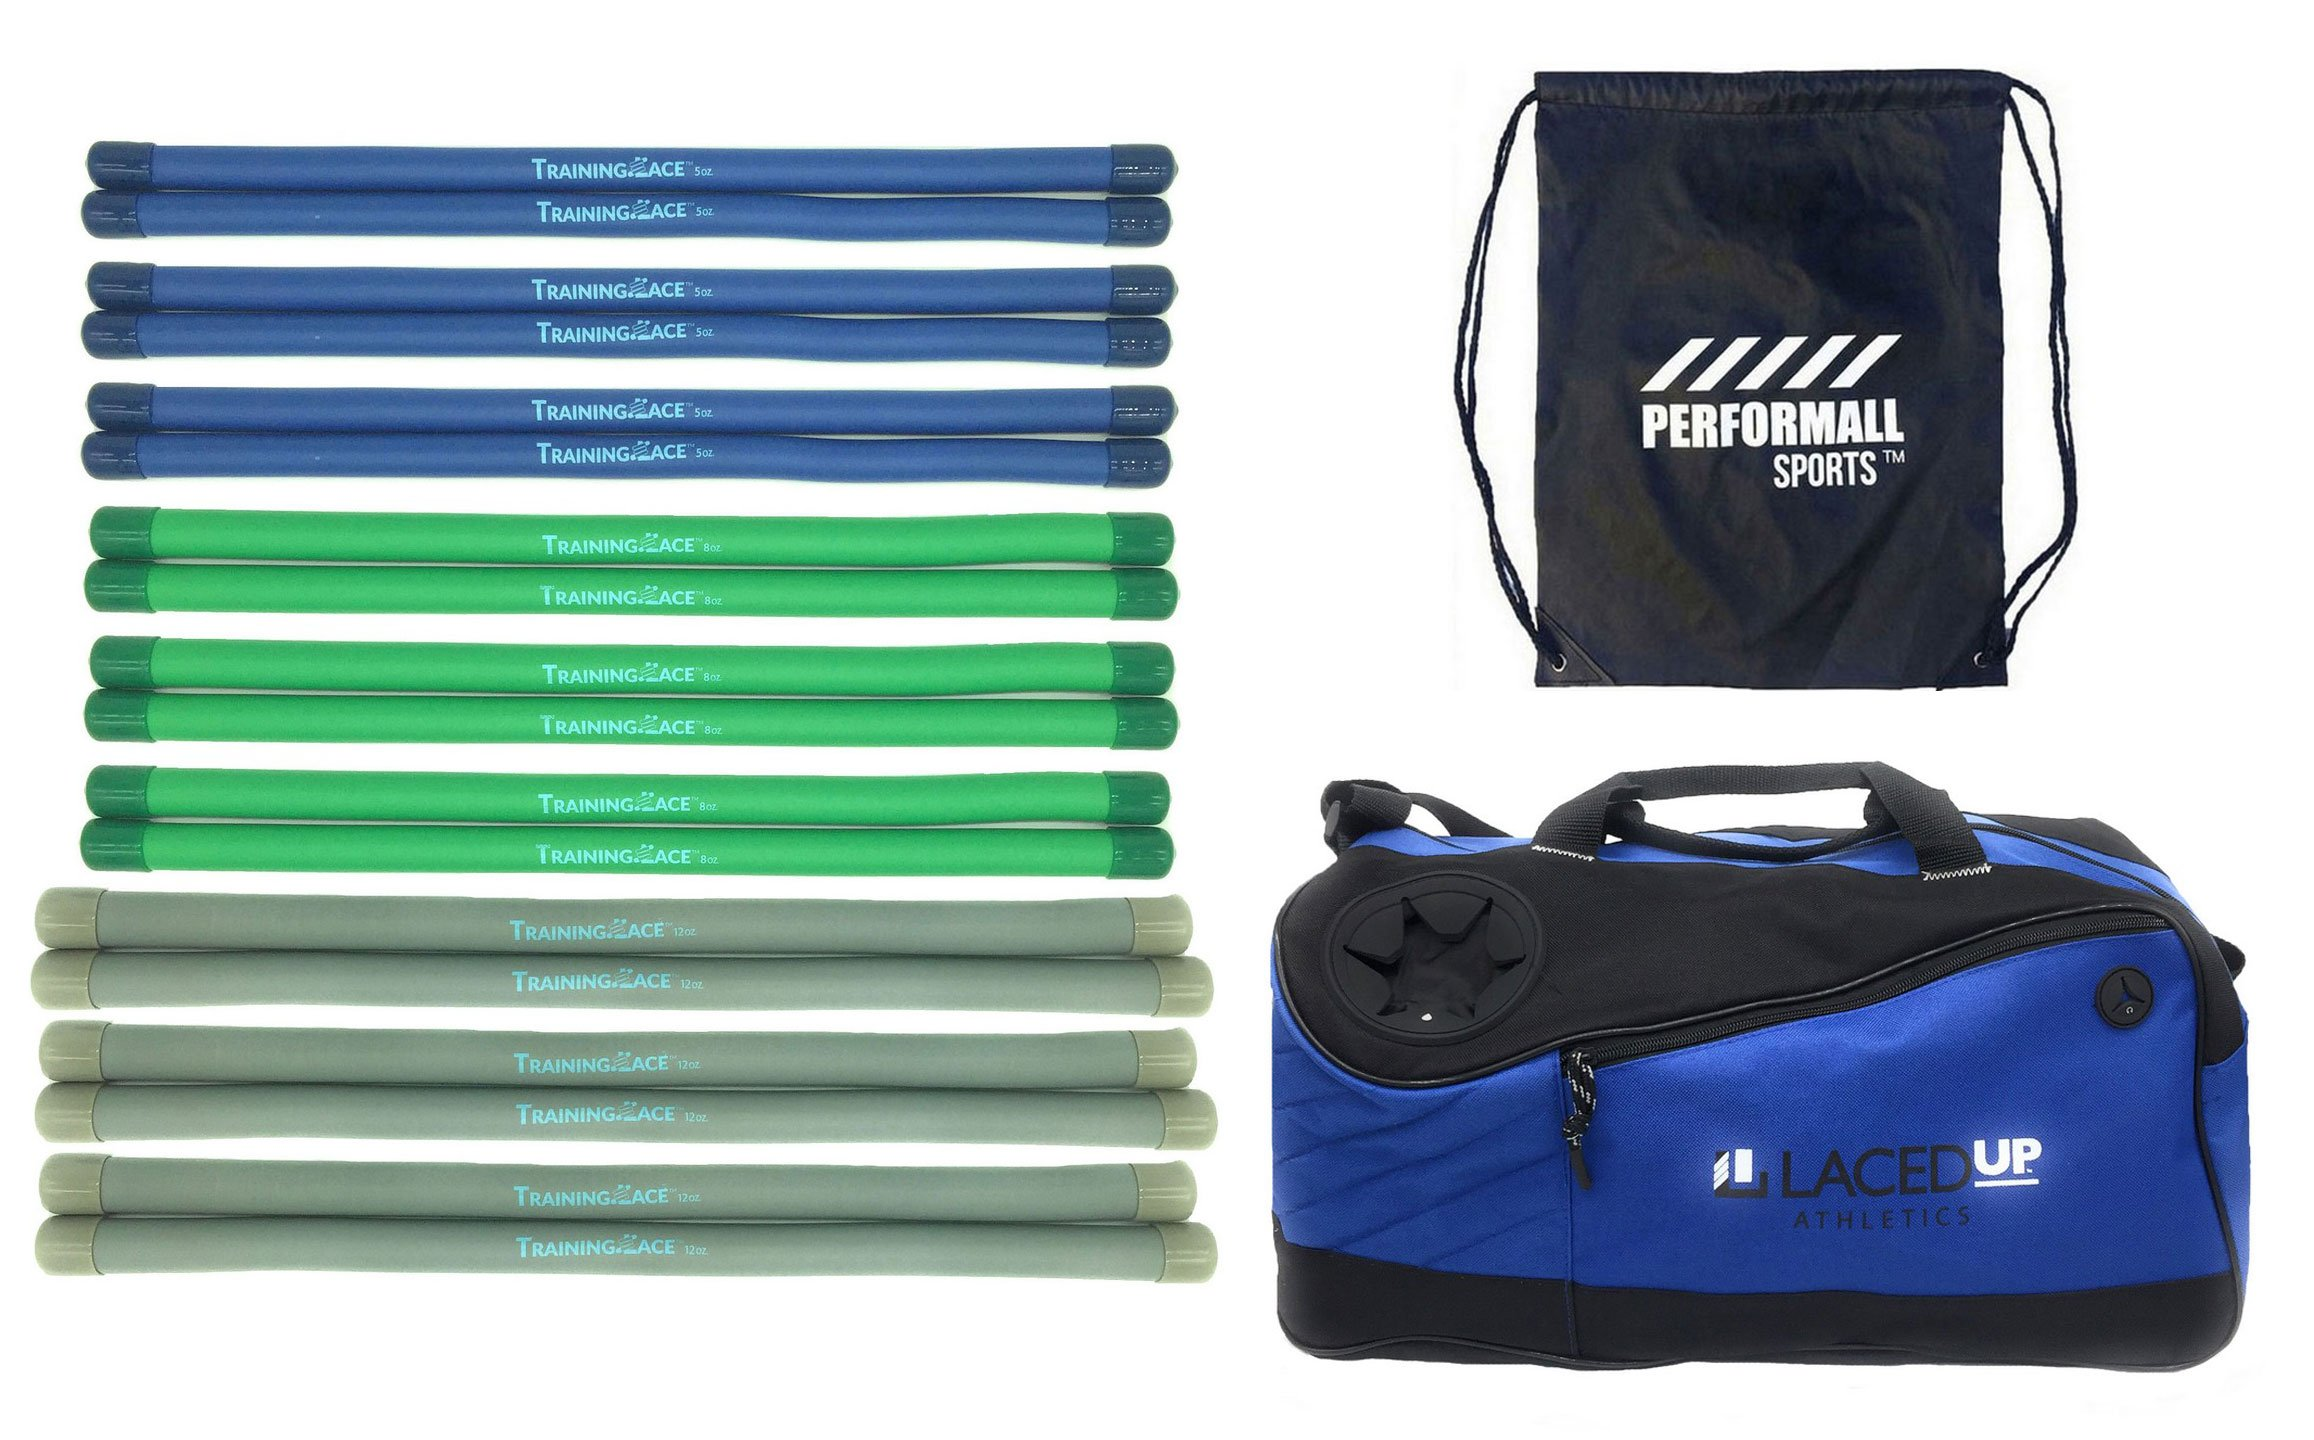 Training Lace Lacrosse Team Pack Combo: 6 of 5oz, 8oz and 12oz plus 1 Duffle Bag Lacedup Athletics TrainingLace bundled with 1 Performall Sport Bag